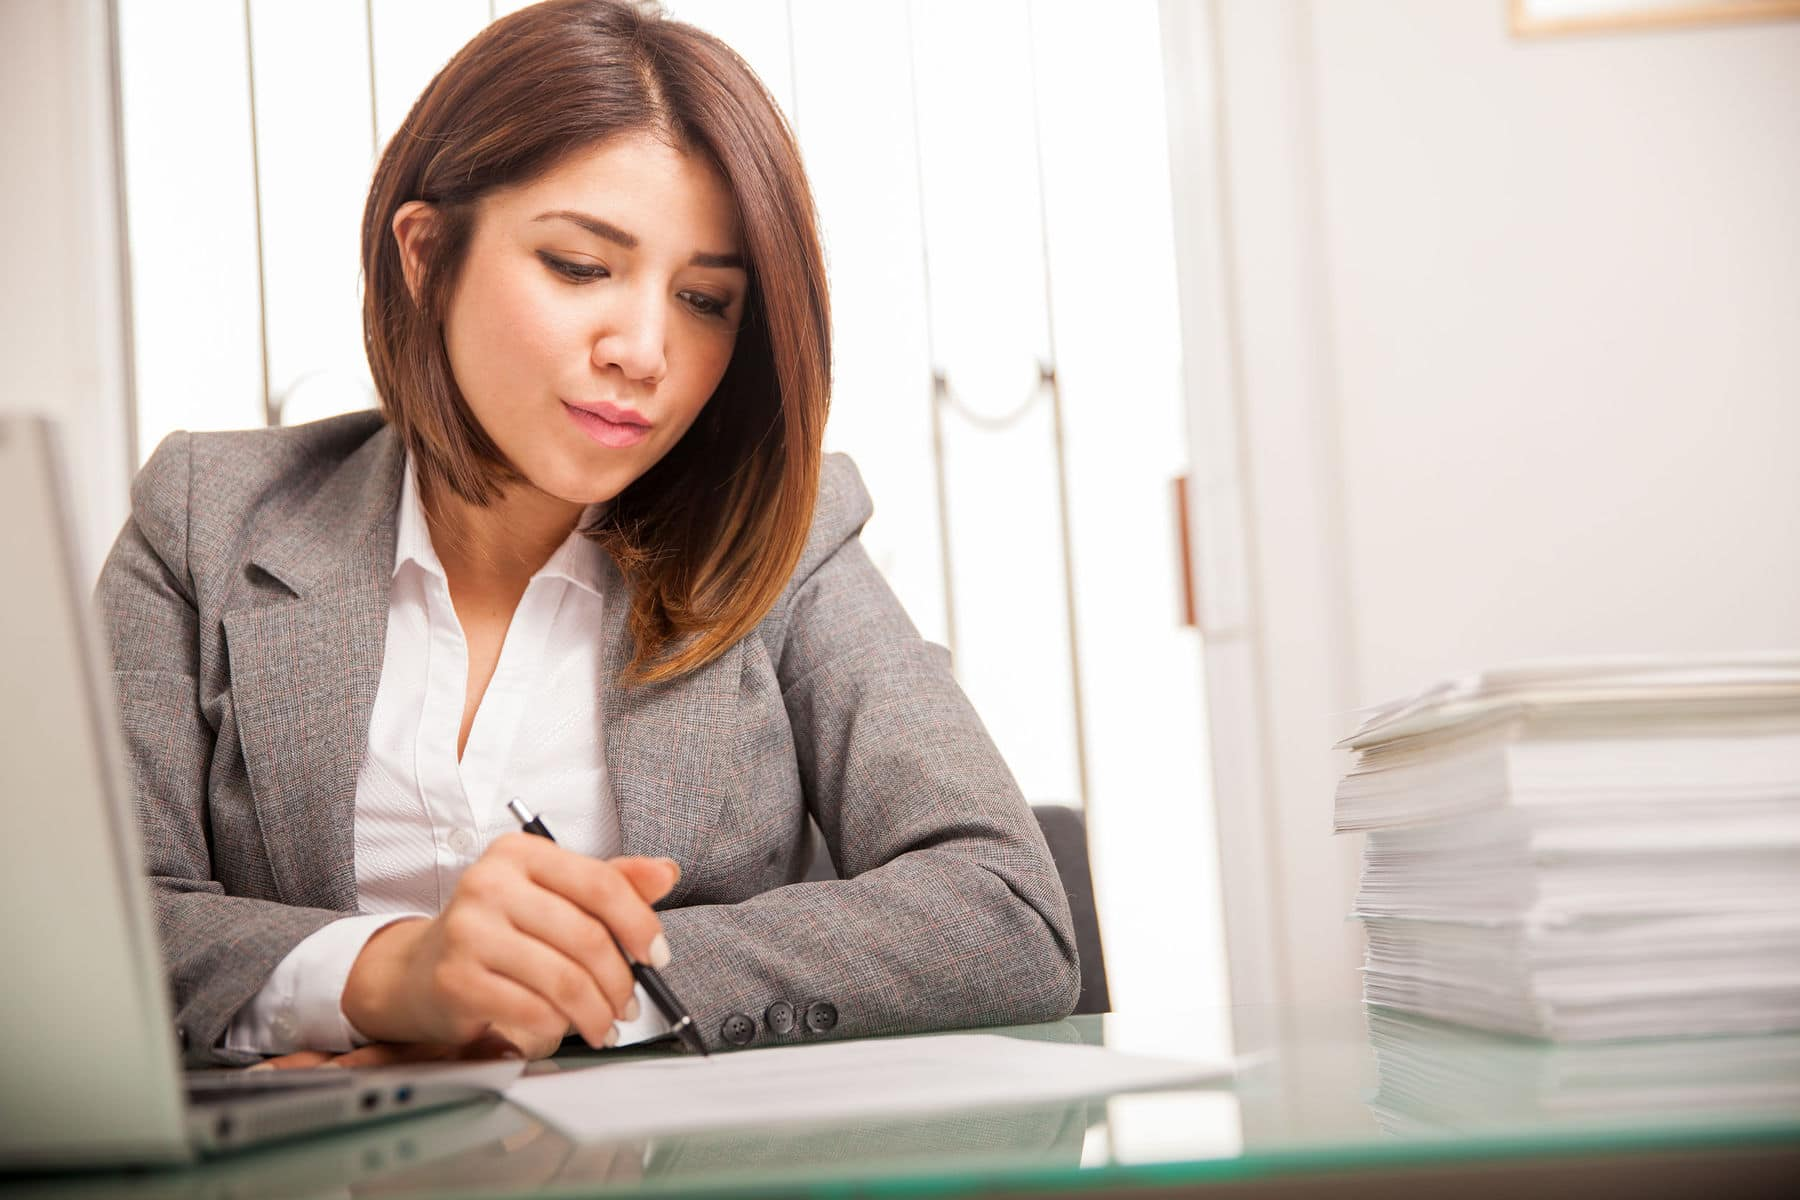 Woman at work feeling stressed